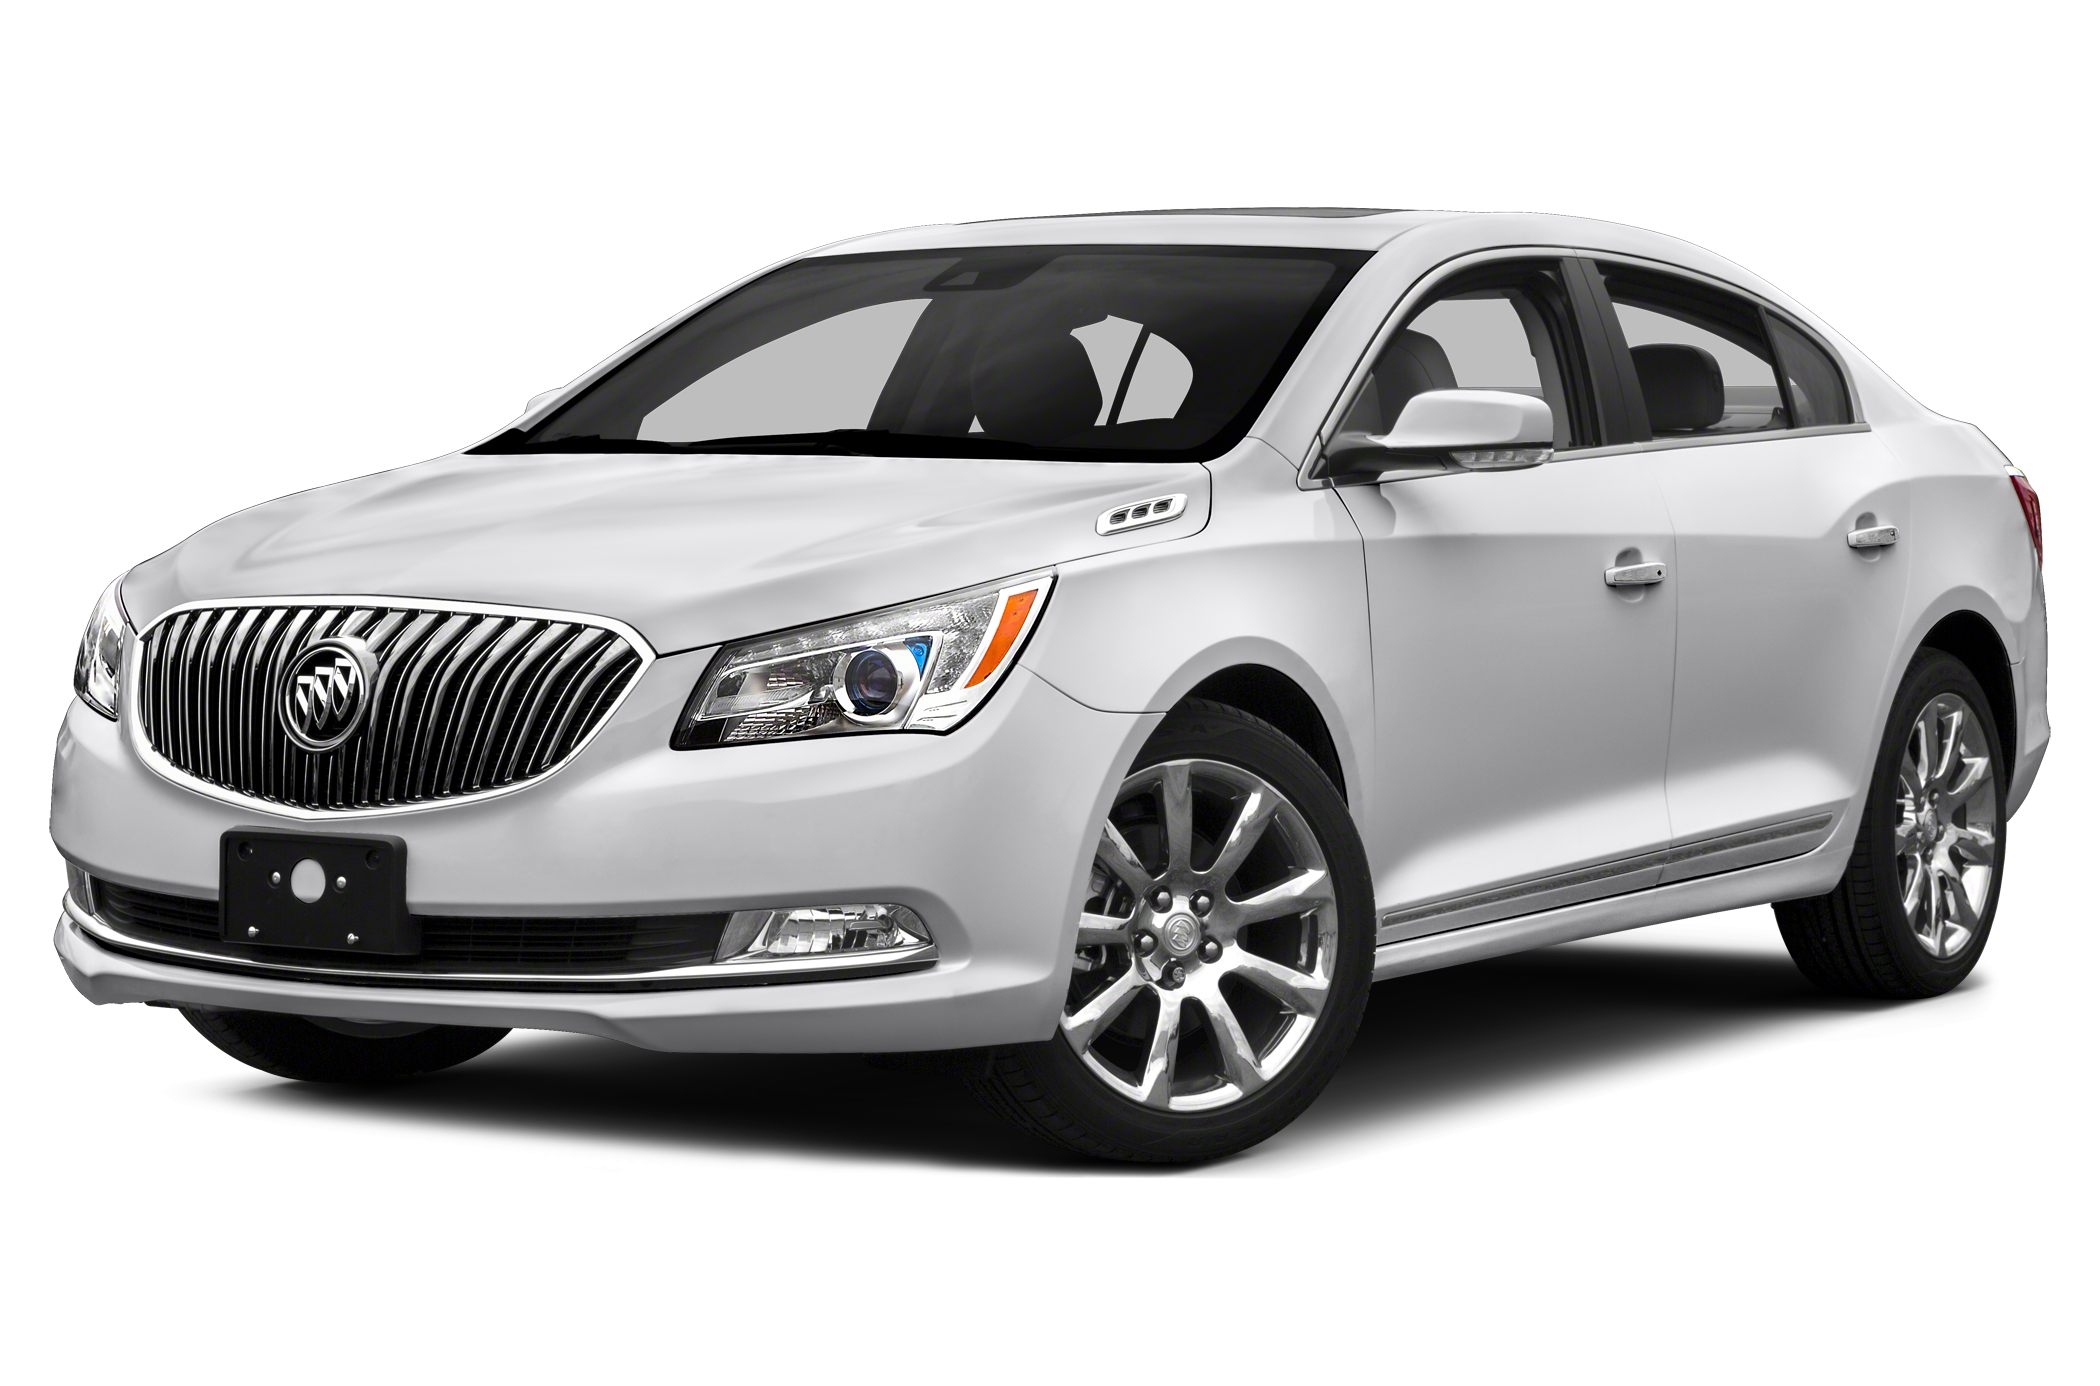 2014 Buick LaCrosse Leather Sedan for sale in Henderson for $26,991 with 34,168 miles.